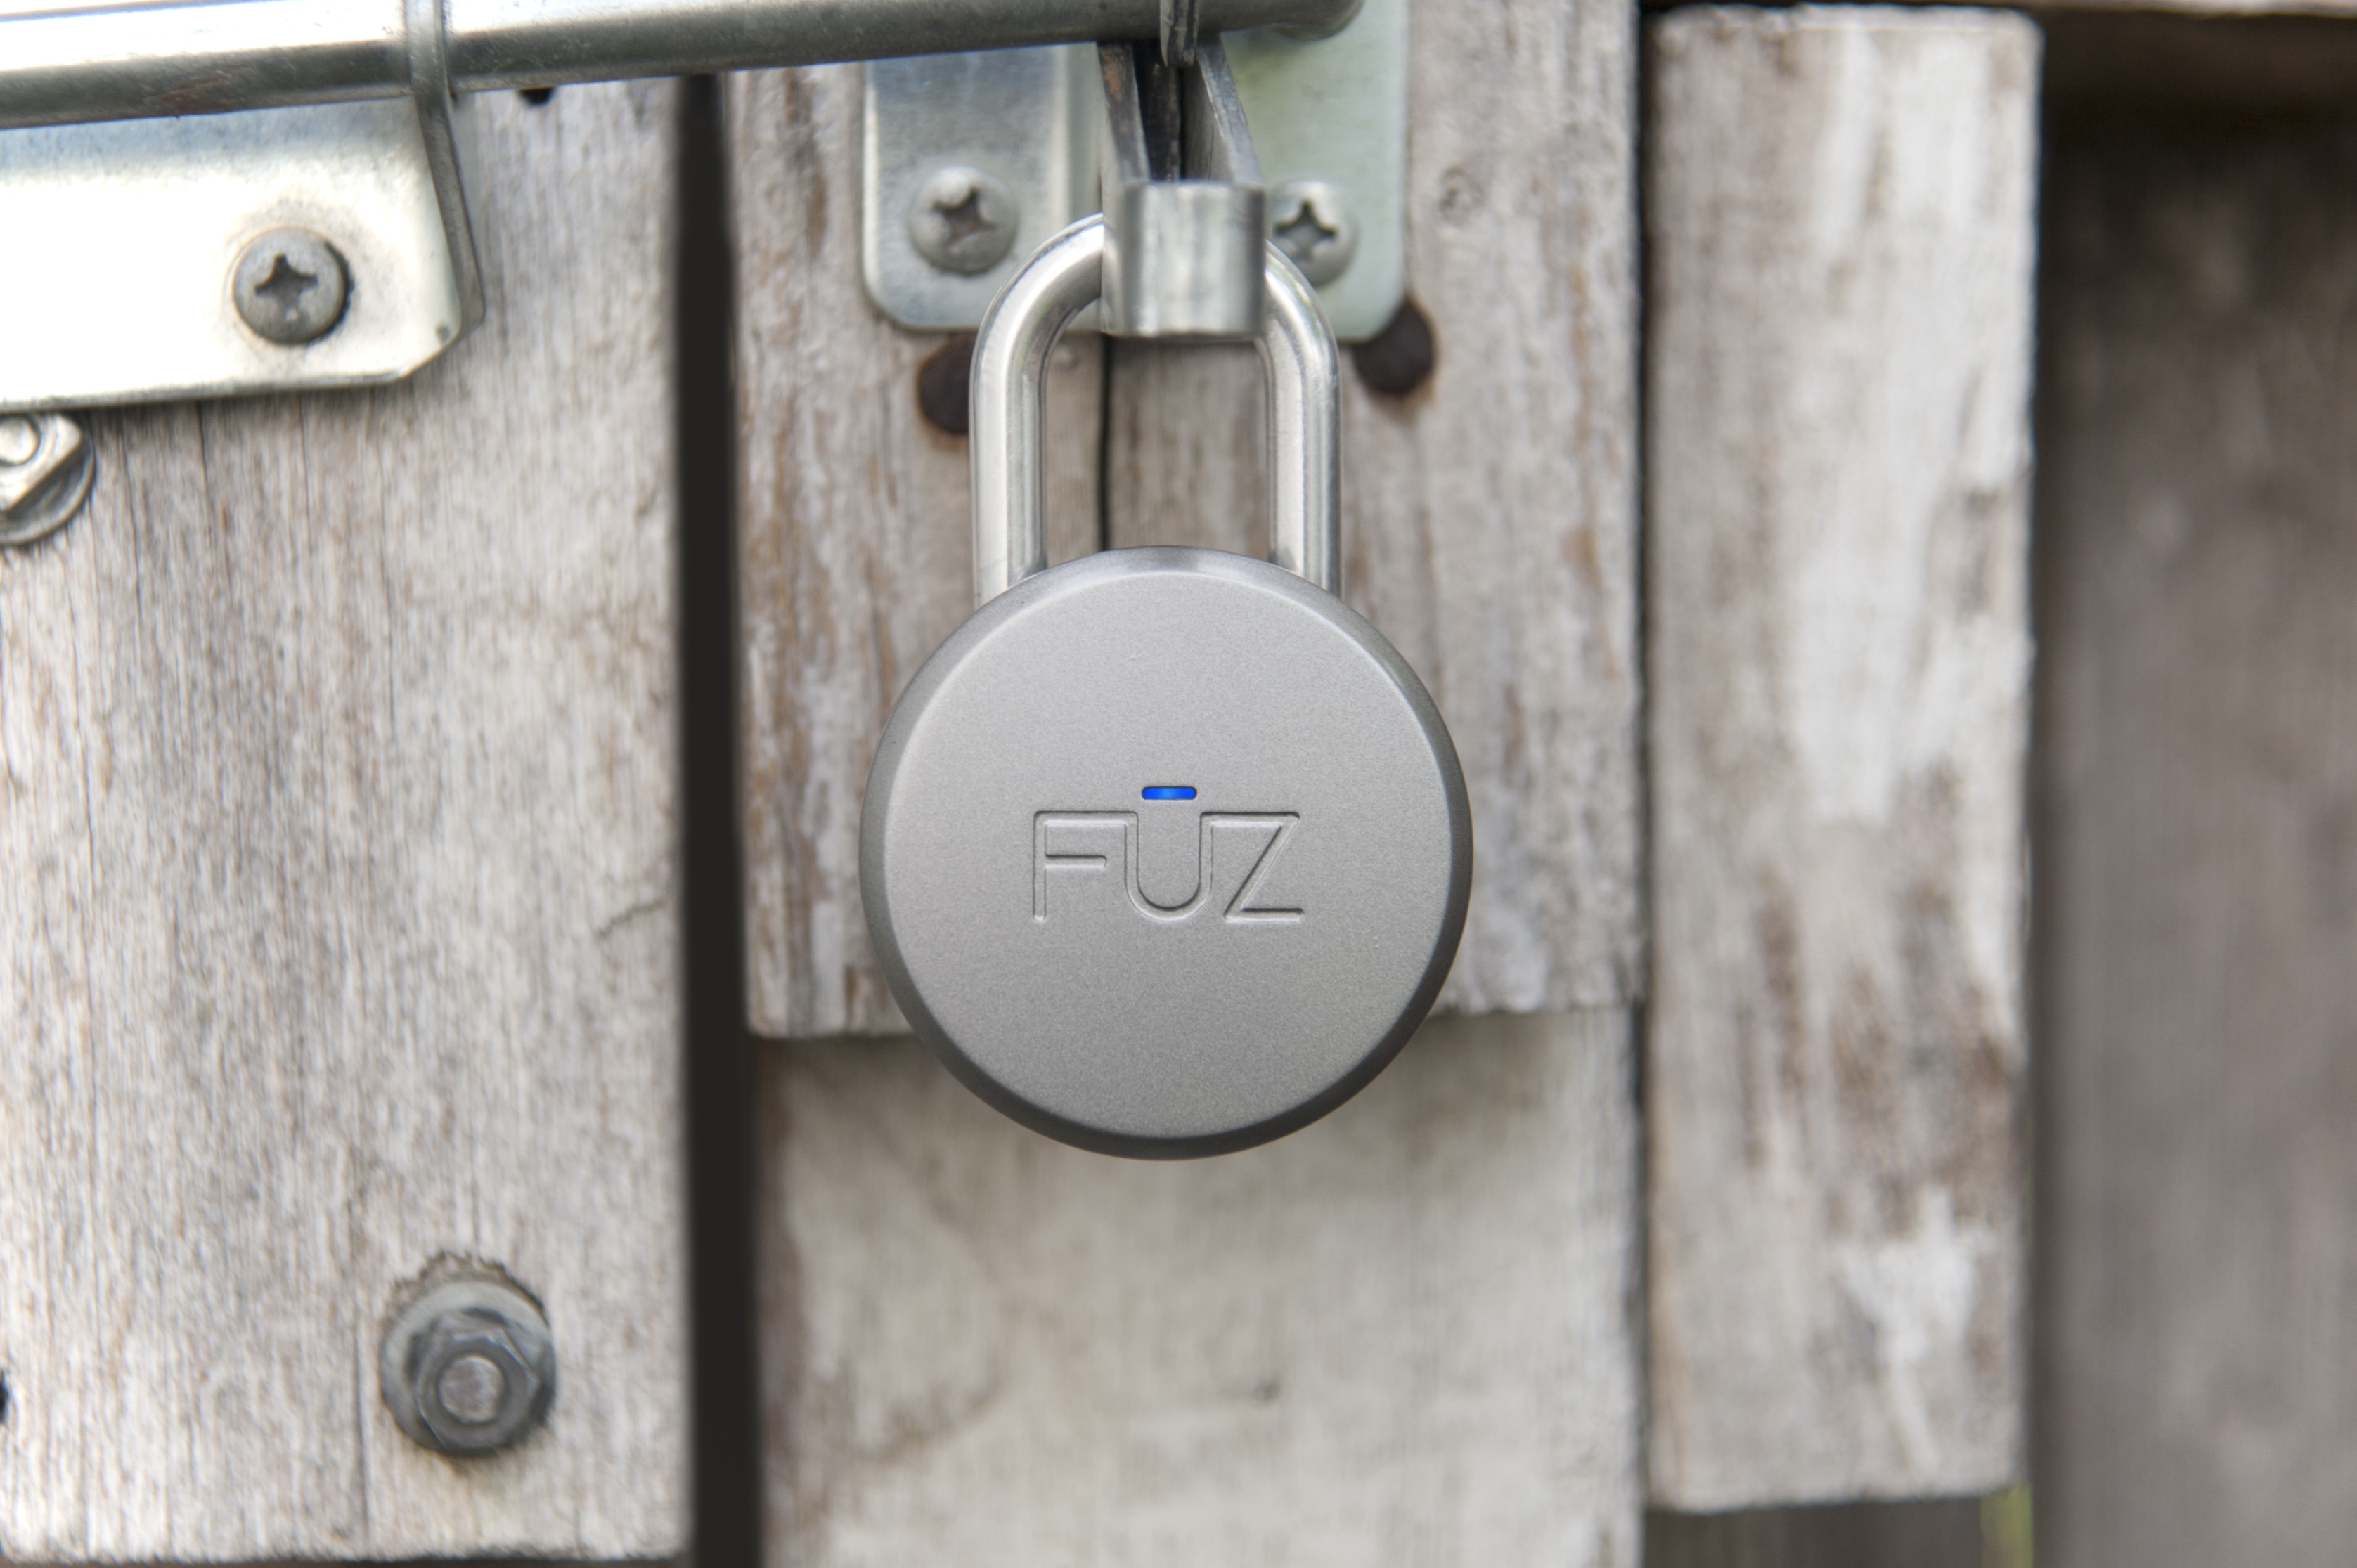 Noke brings Bluetooth Smart to the common padlock